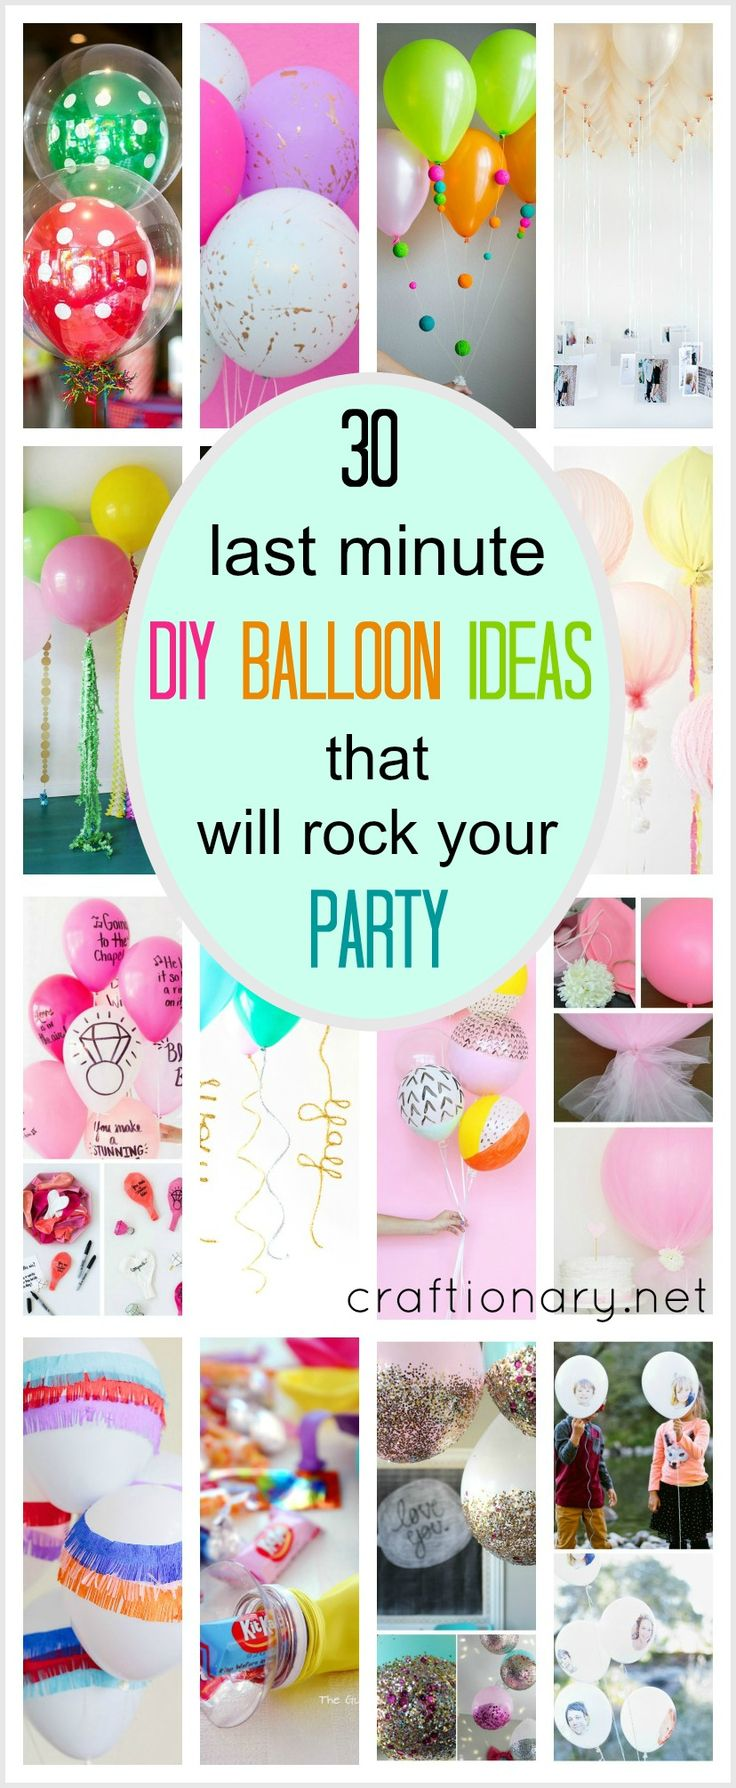 DIY balloon ideas that are good for last minute prep for any party